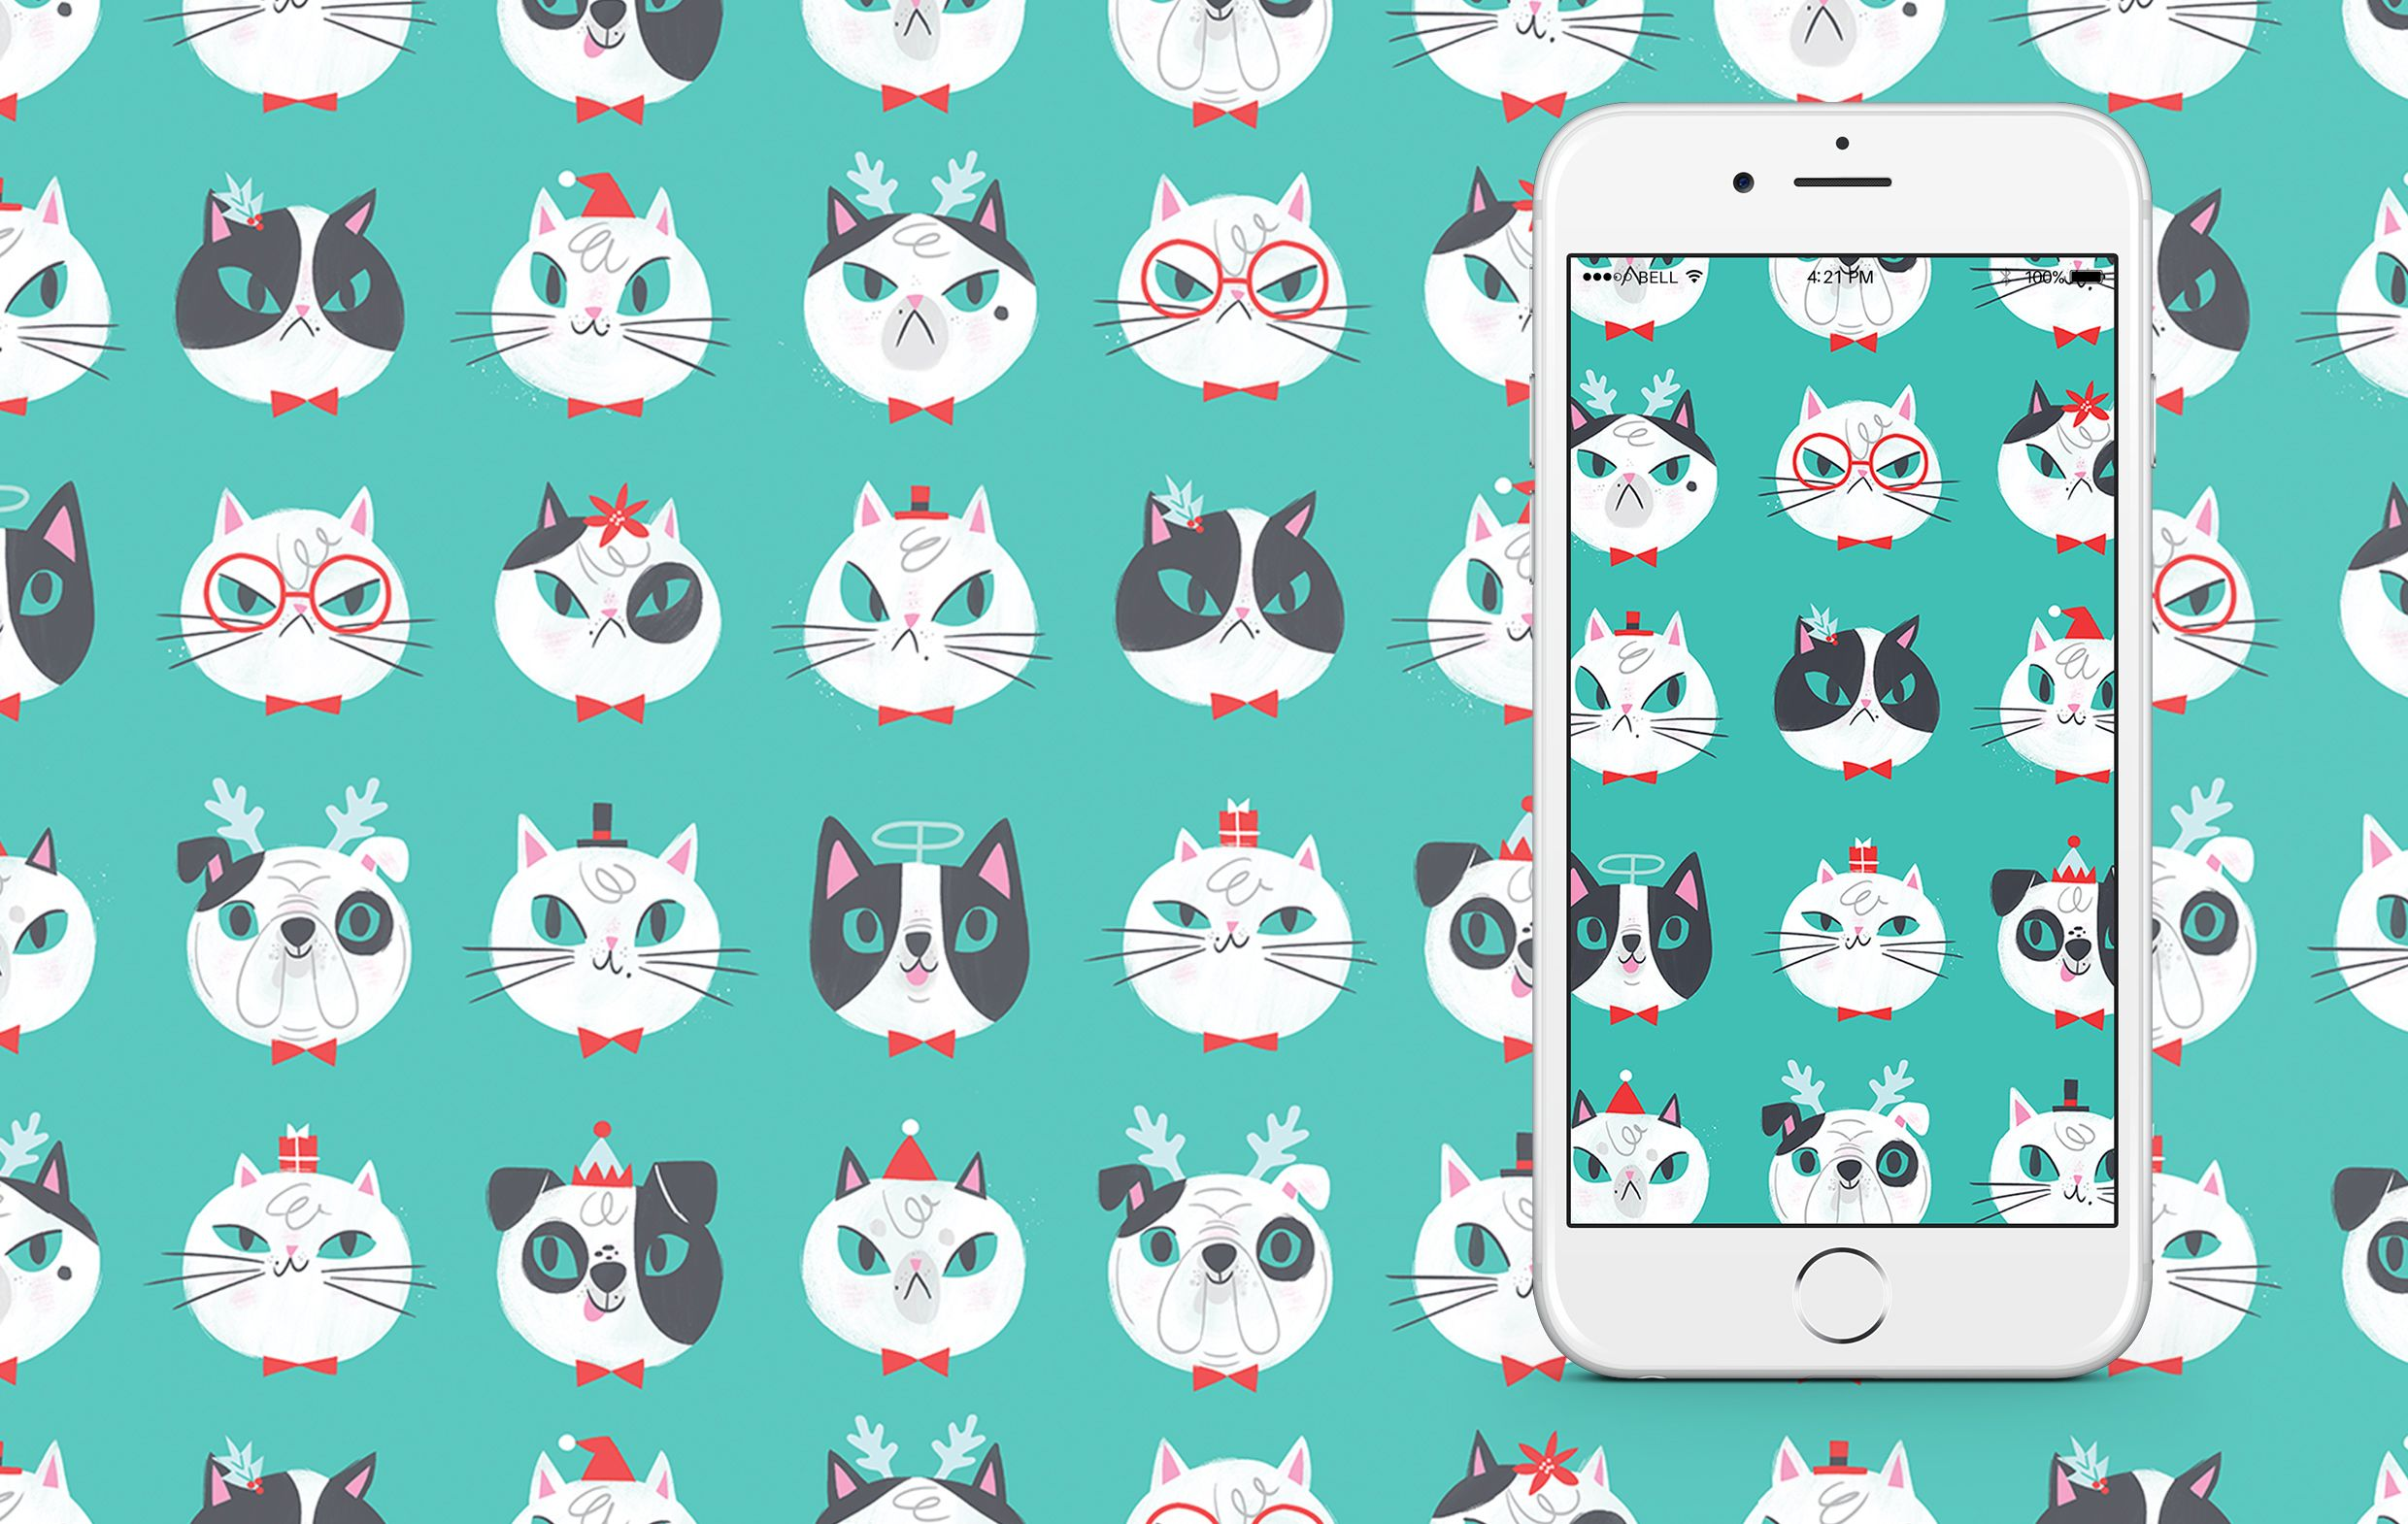 Snazz up your tech with these super cute cats & dogs, all